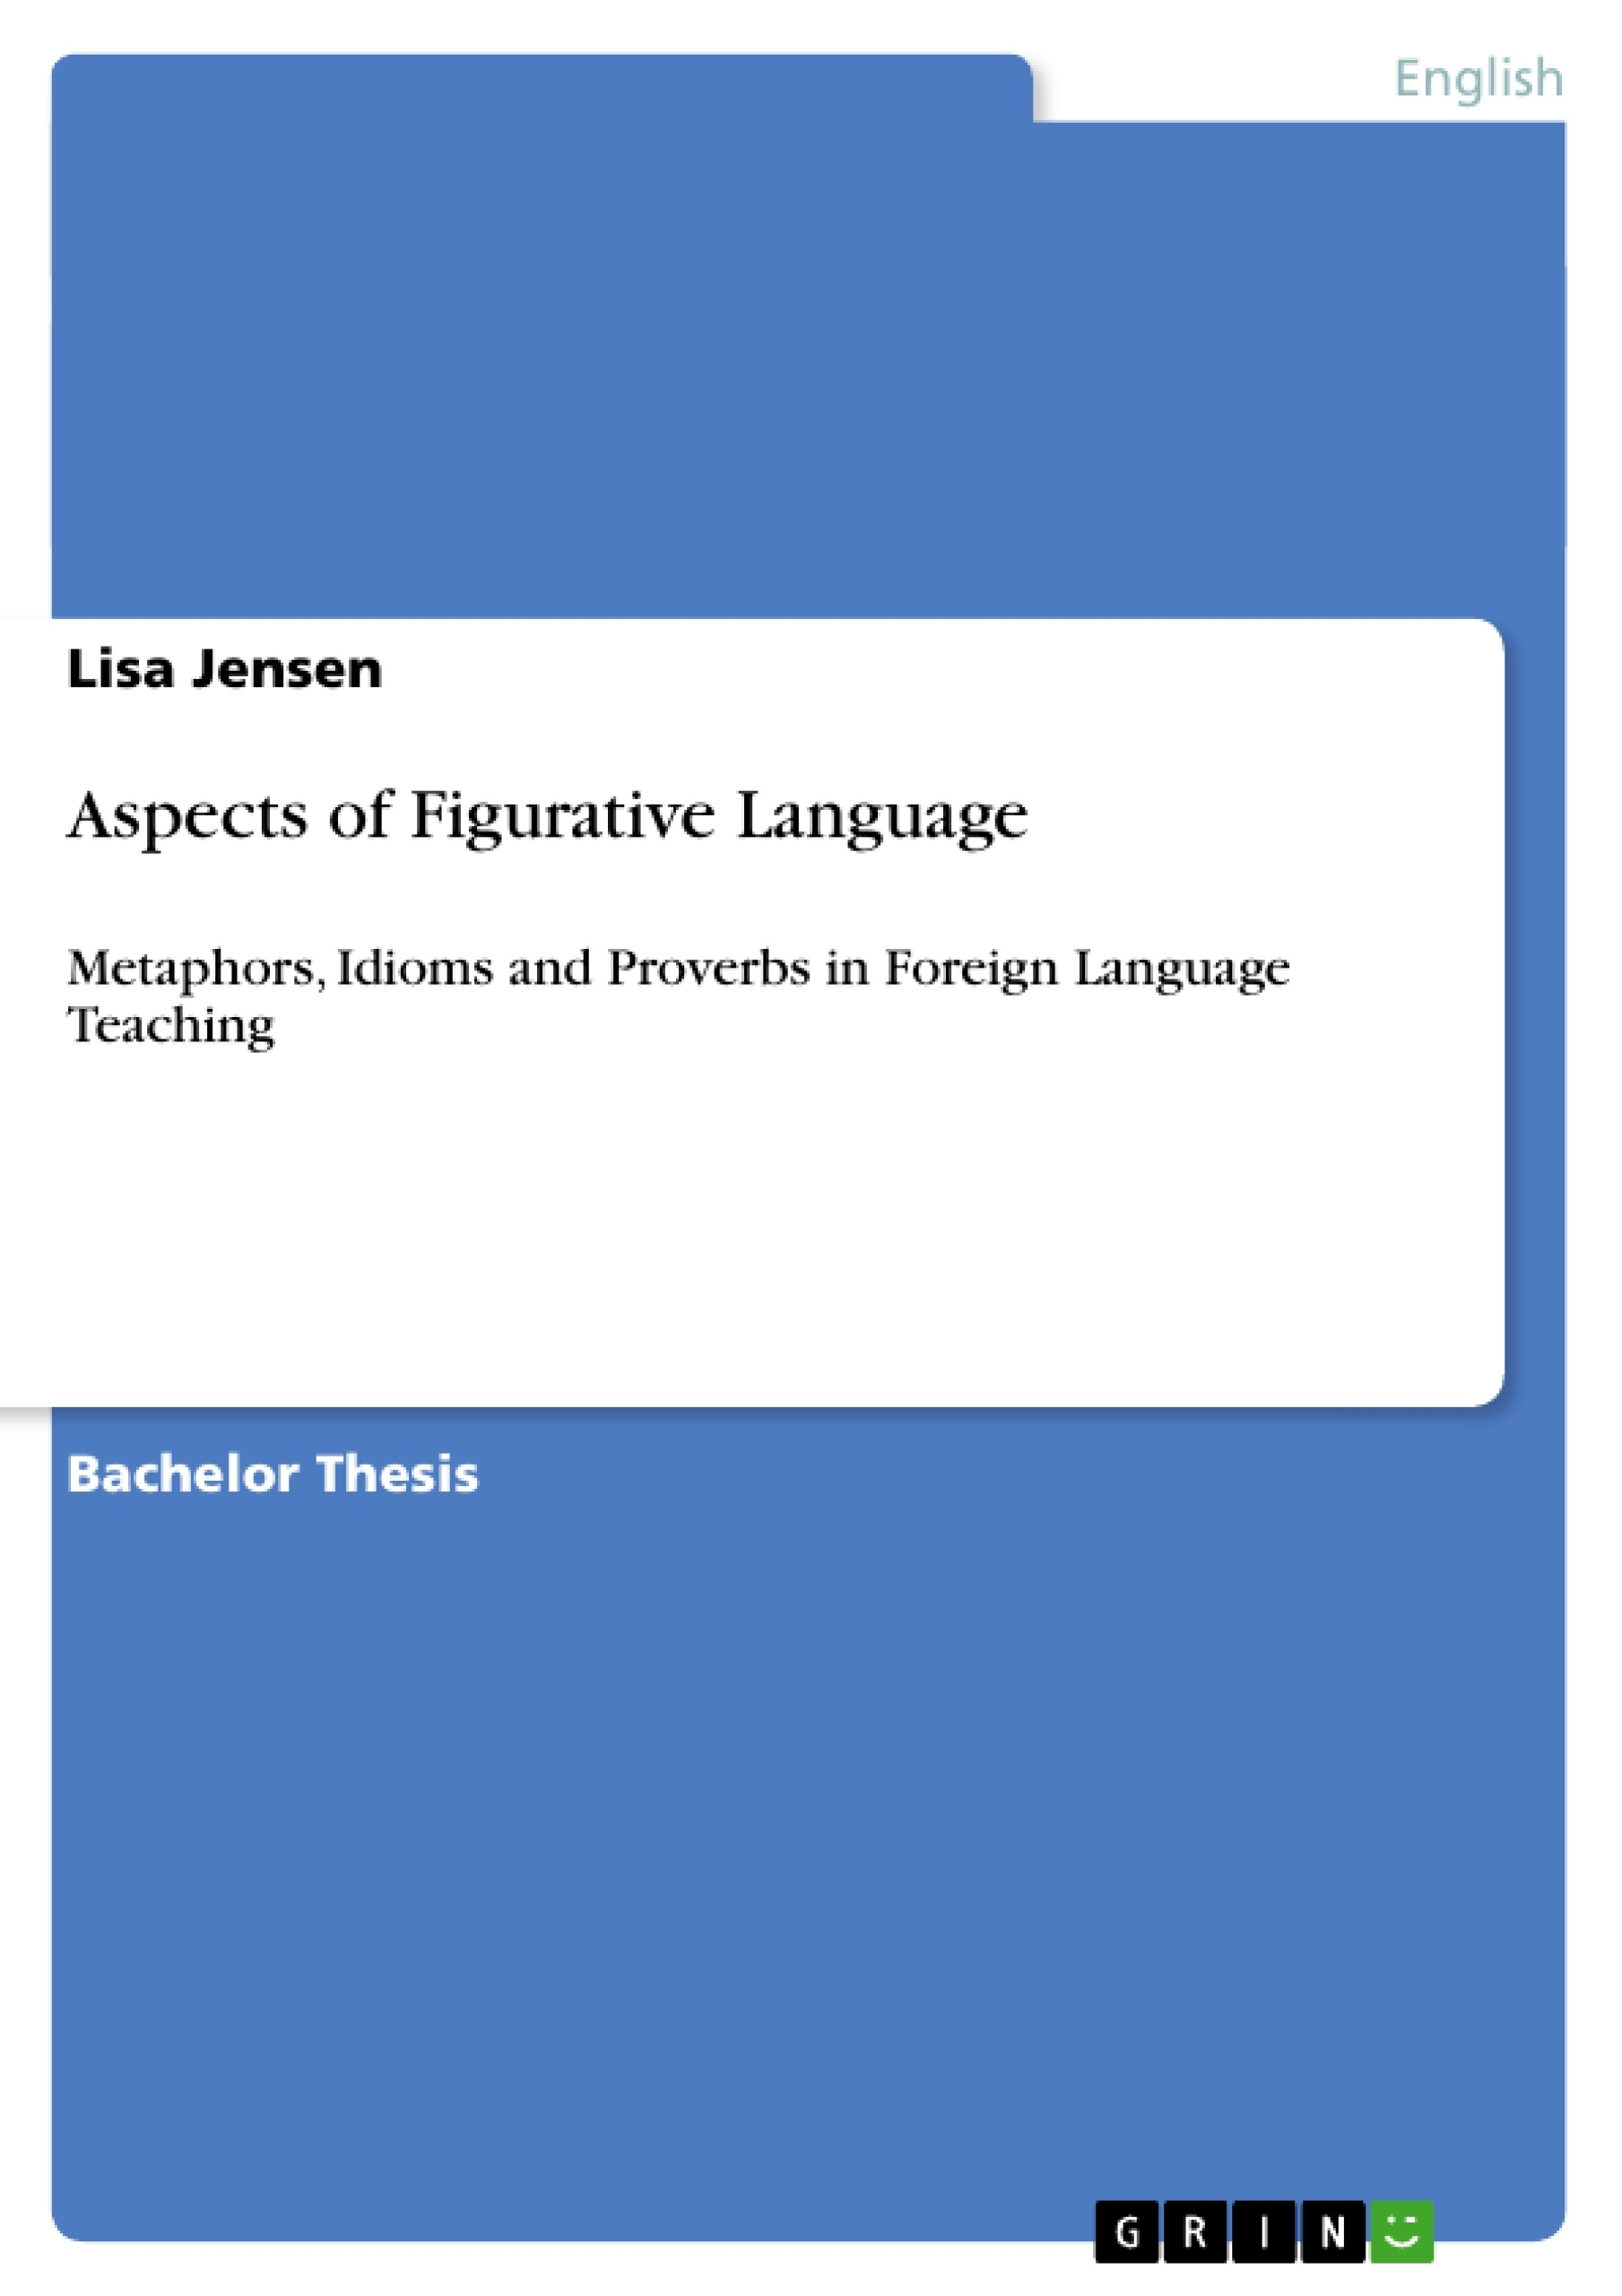 Aspects Of Figurative Language Publish Your Masters Thesis